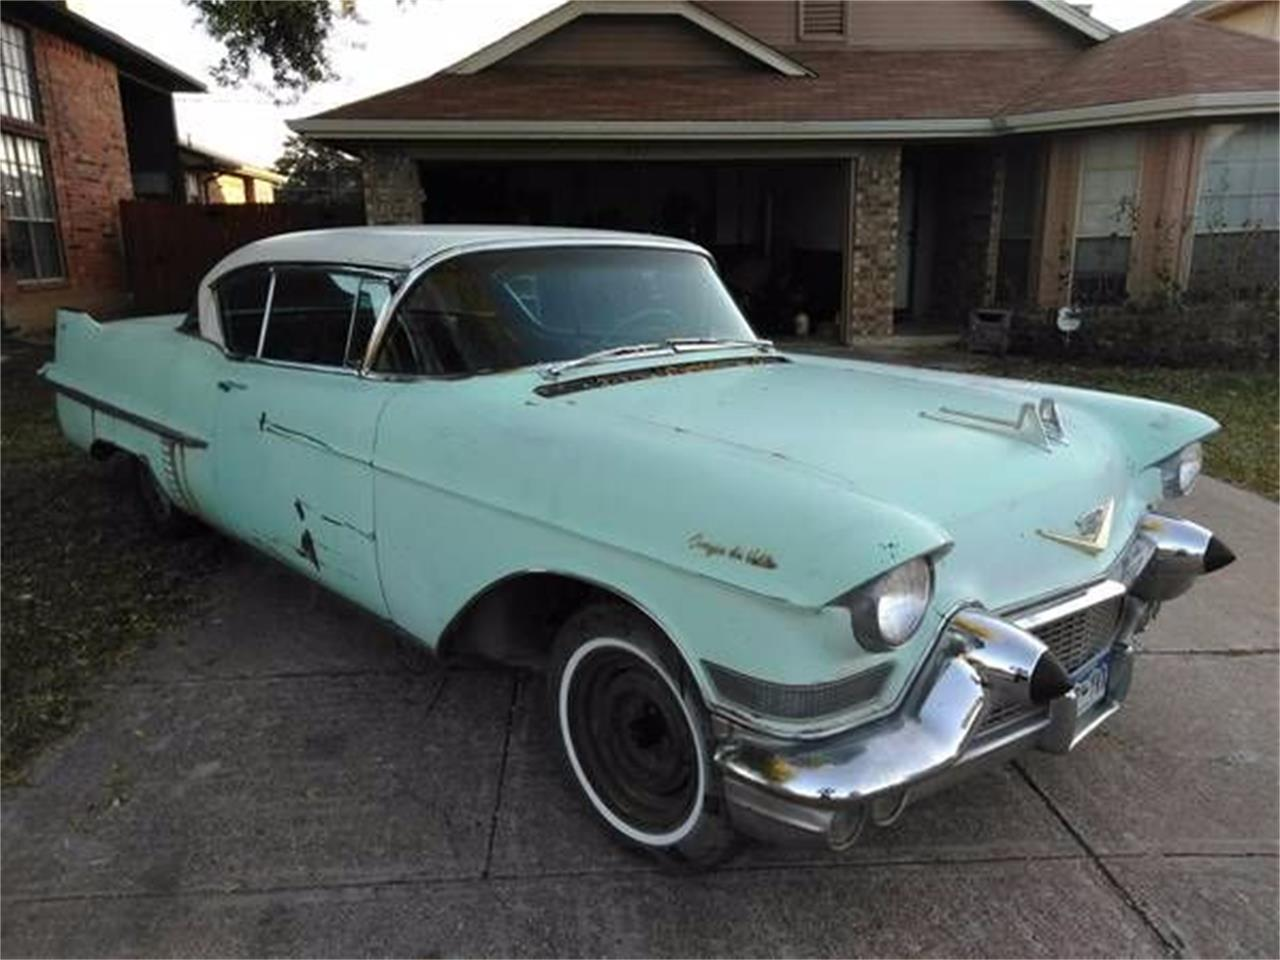 1957 Cadillac Coupe DeVille - white over pink - fvr ...